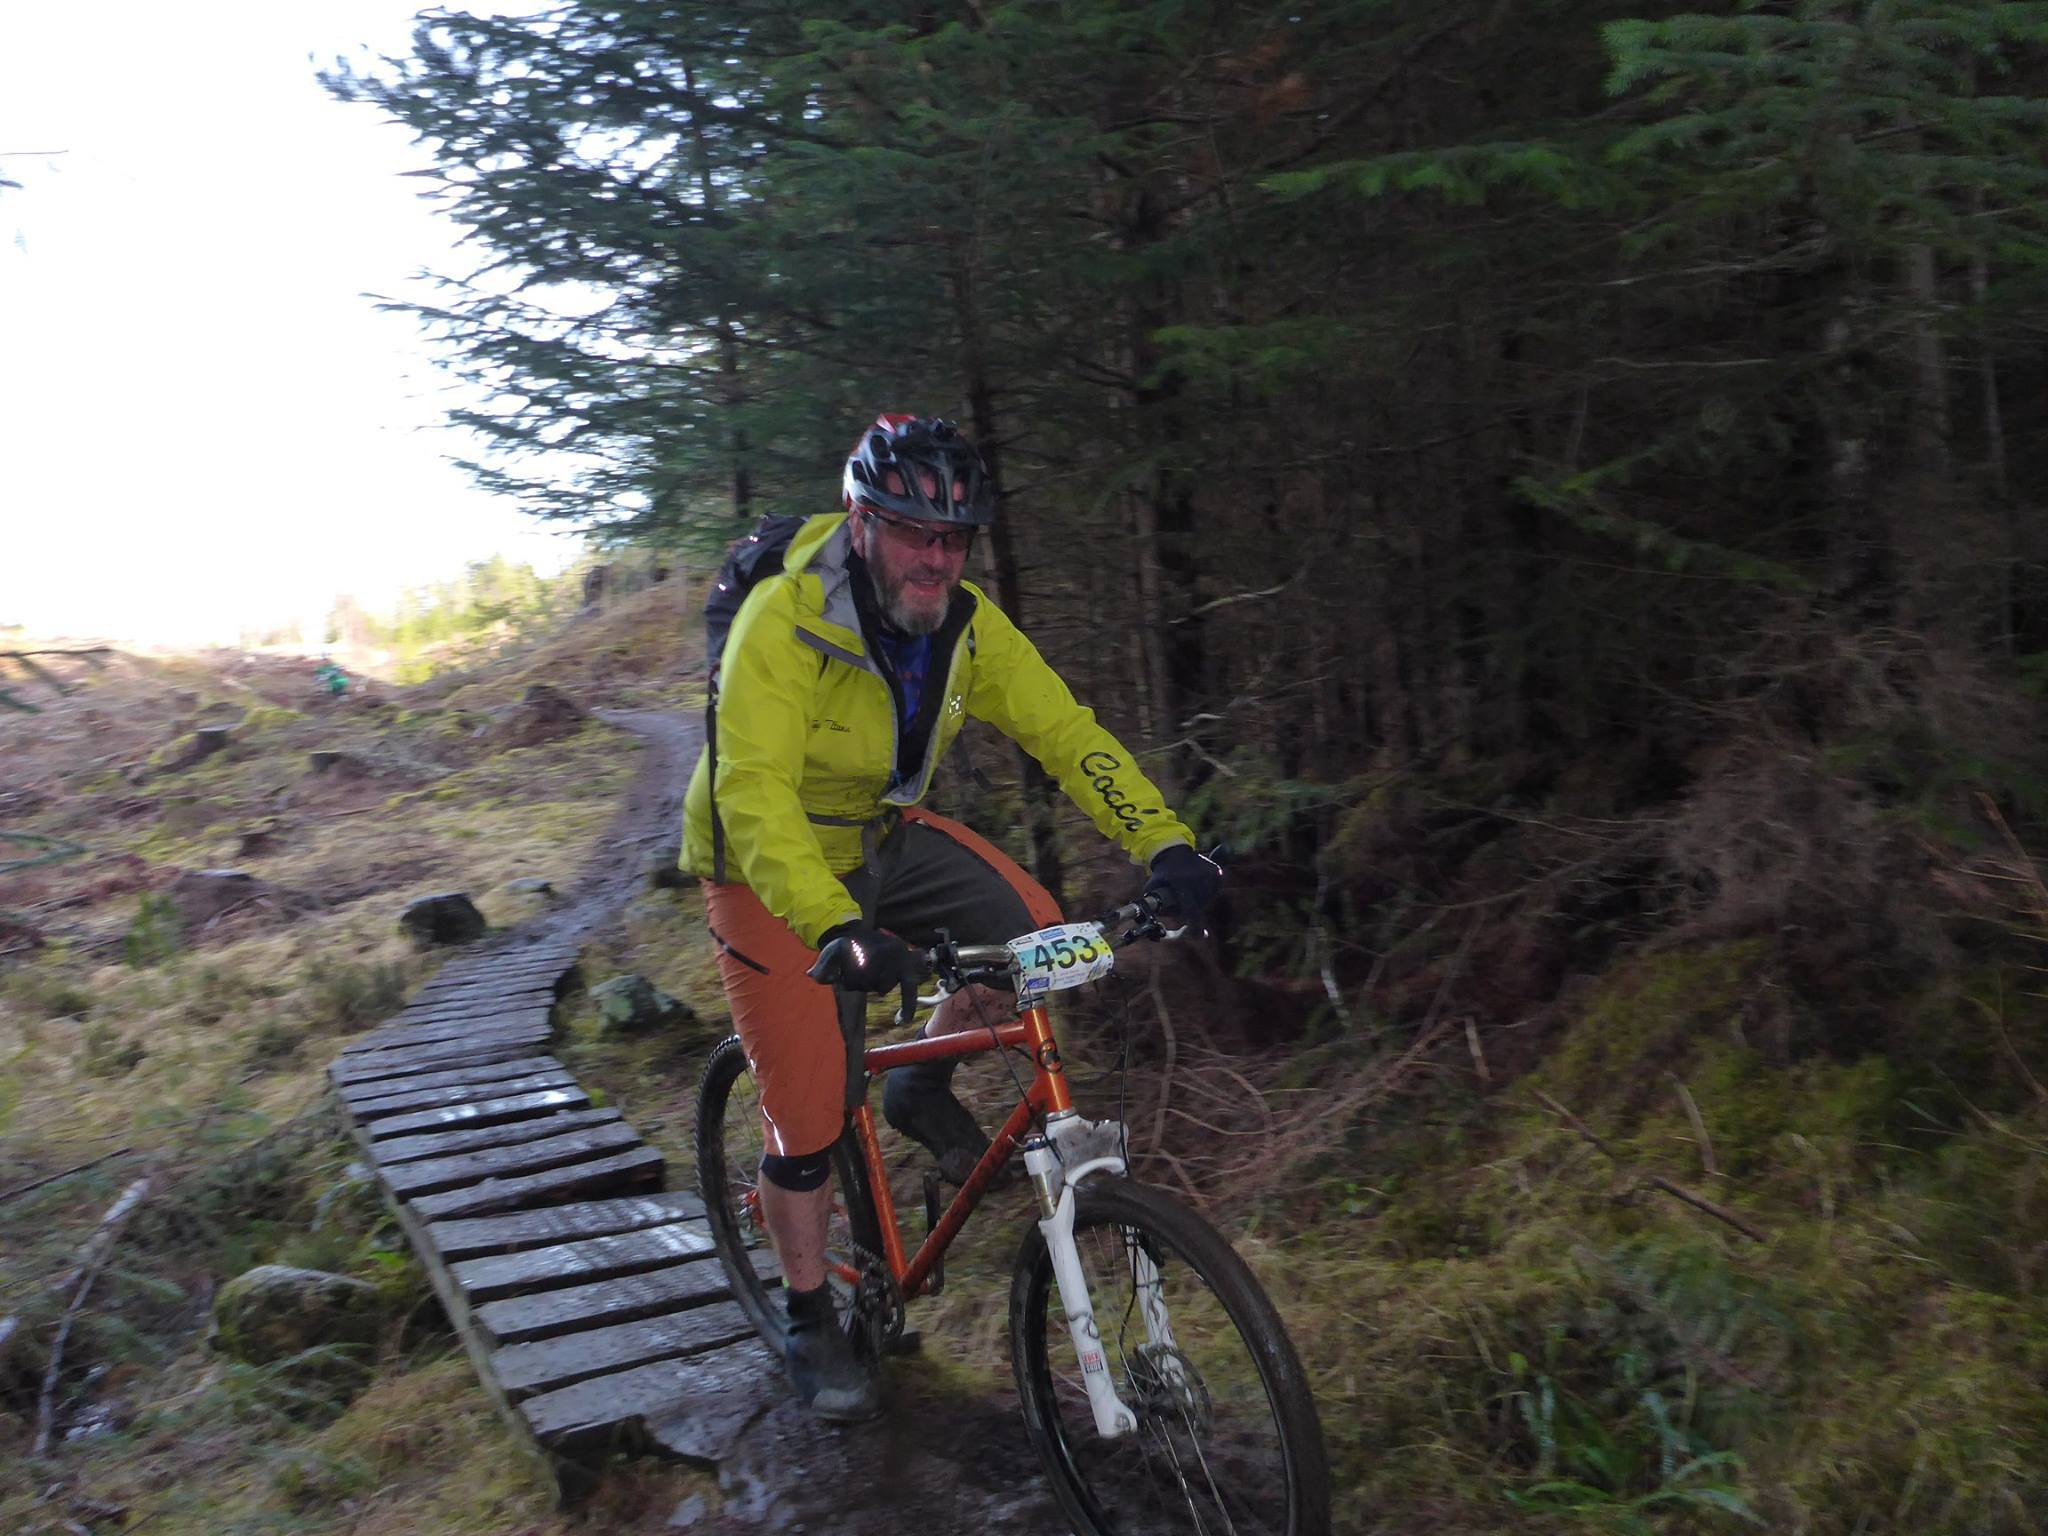 Scot on the single track section of the Strathpuffer